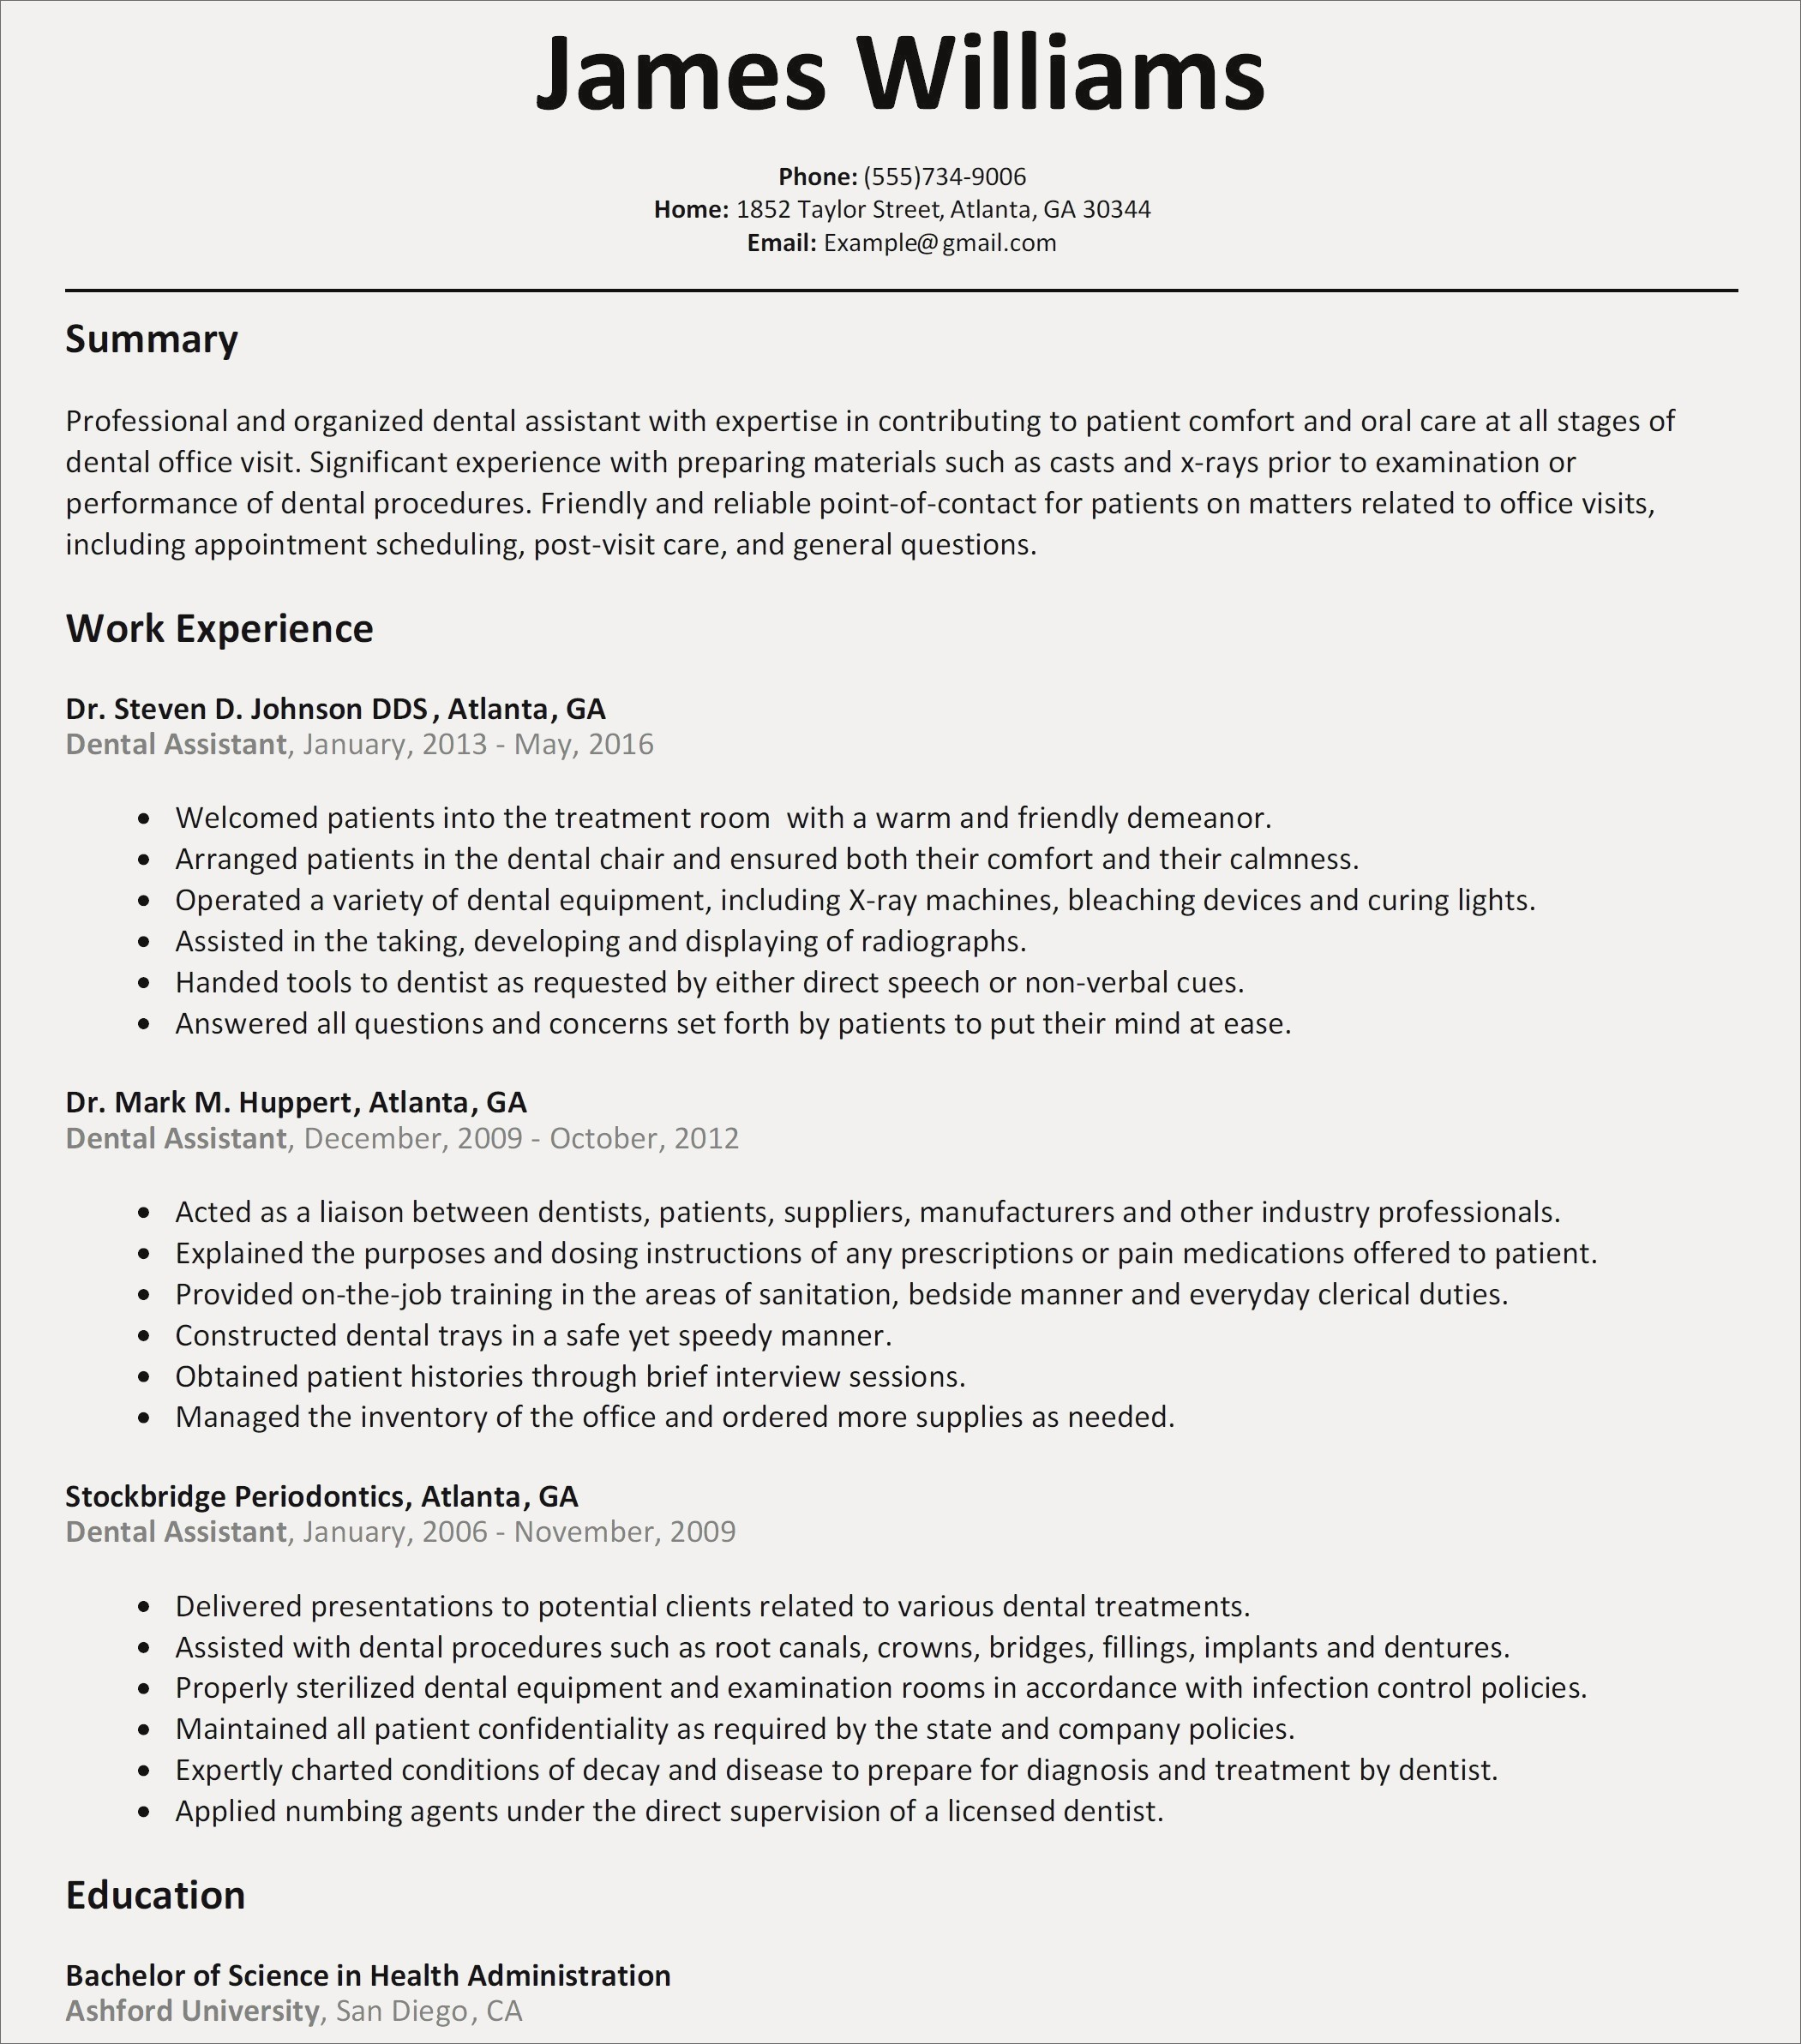 Professional Summary On Resume - Resume Professional Summary Examples New Sample Resumes